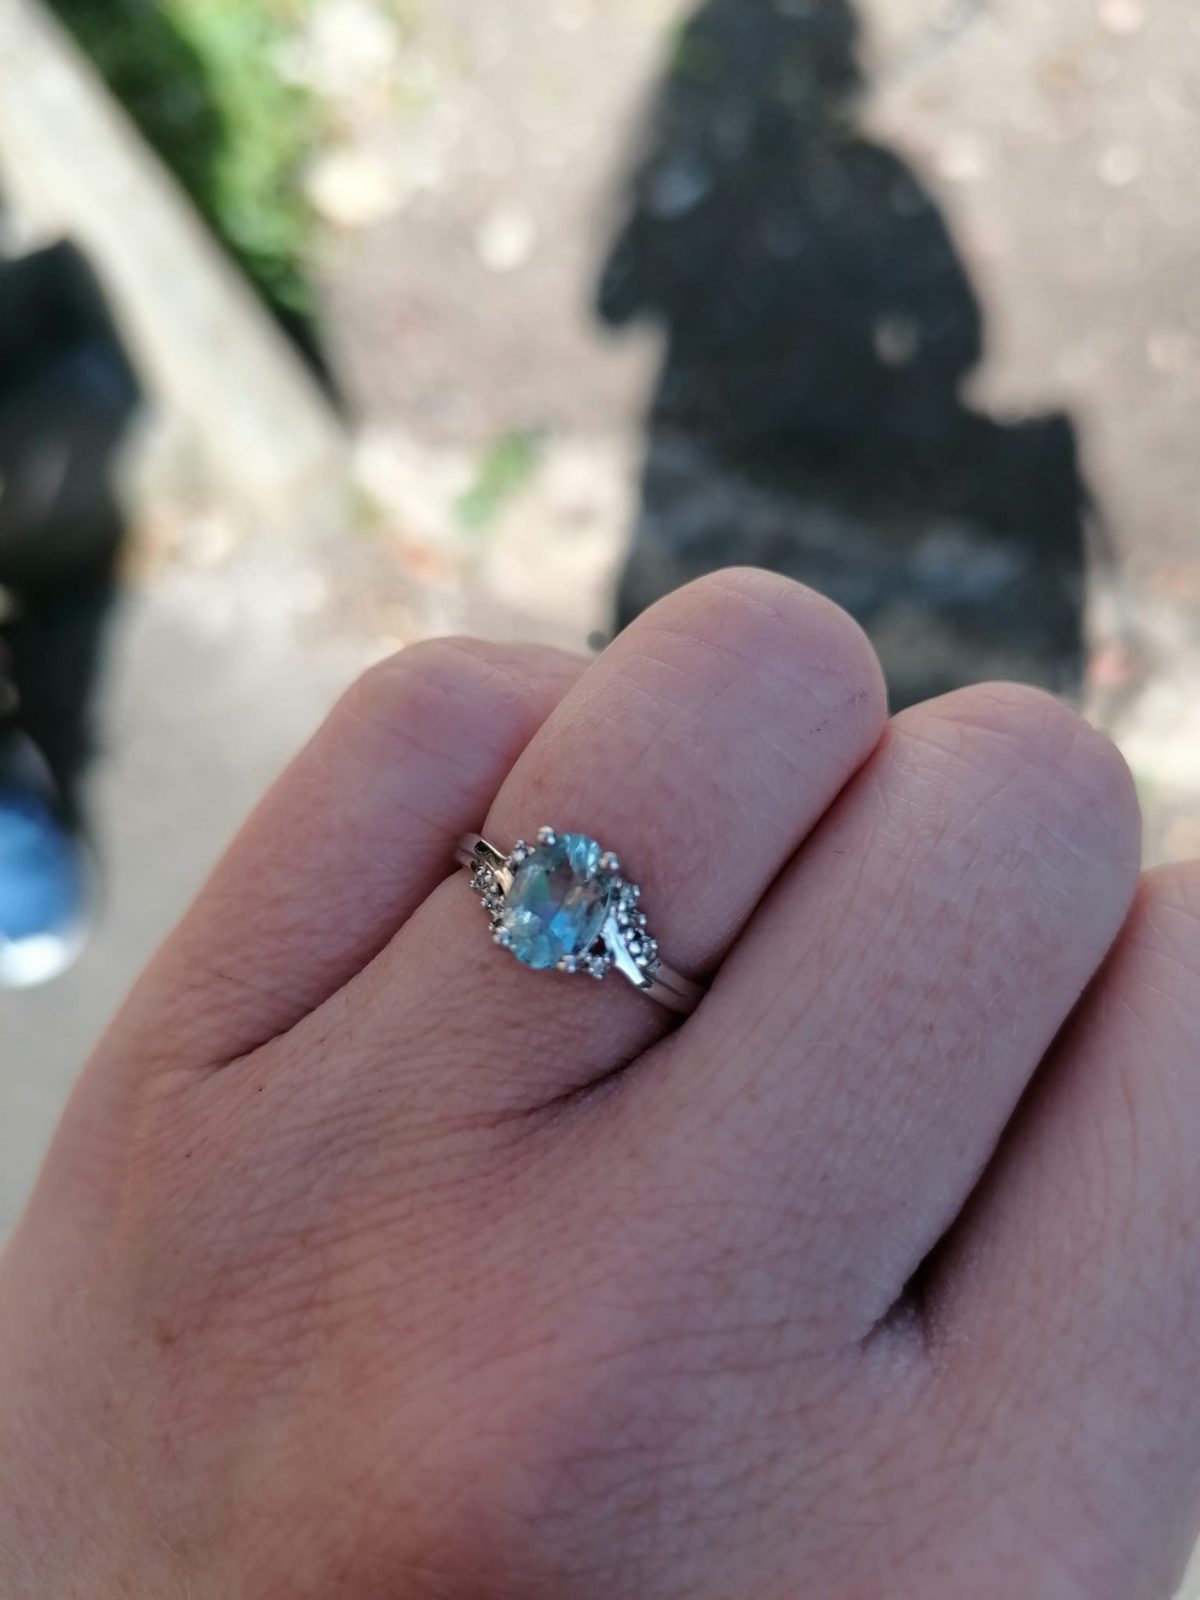 Milly Reece's engagement ring photographed in Lincoln Arboretum